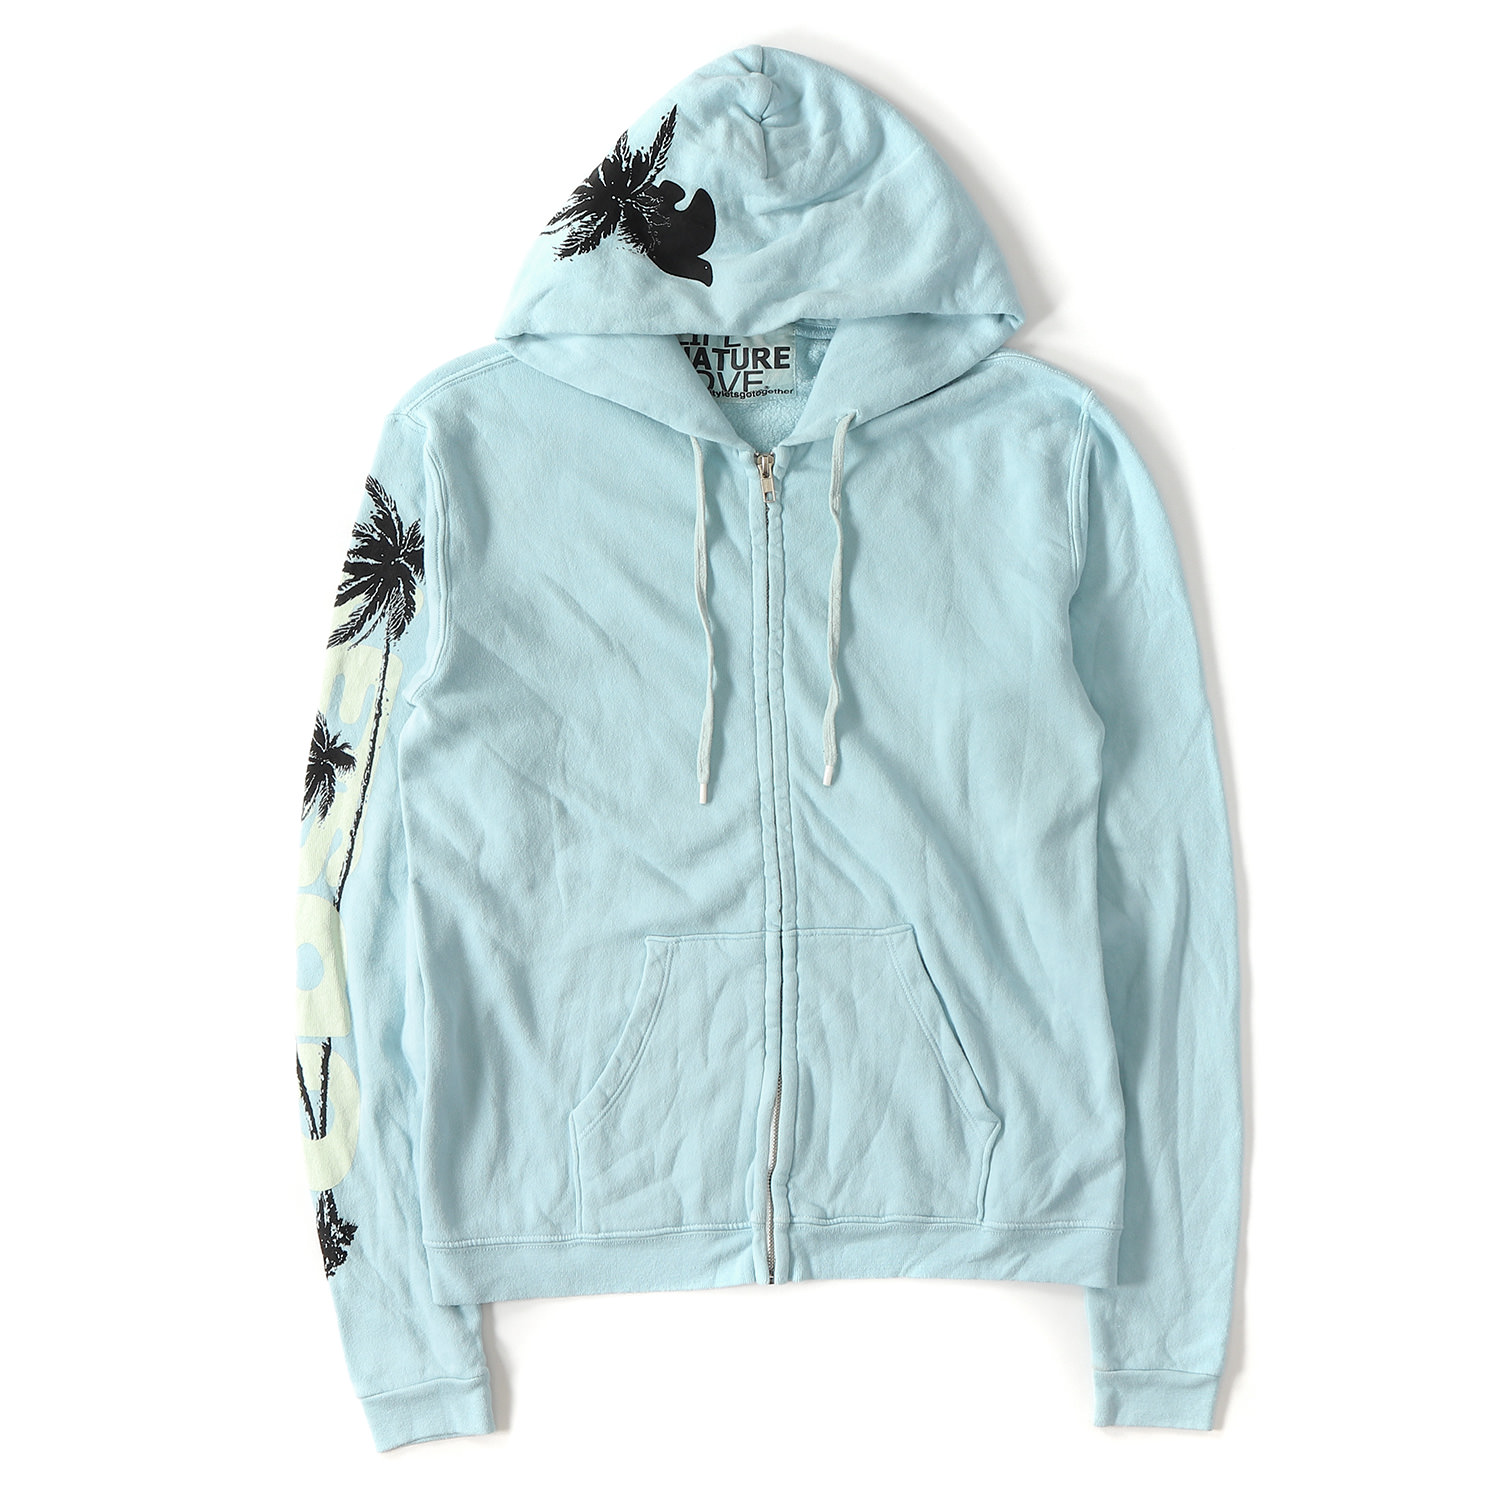 Vintage Feathers Blowing in The Wind Graphic Hoodie for Men